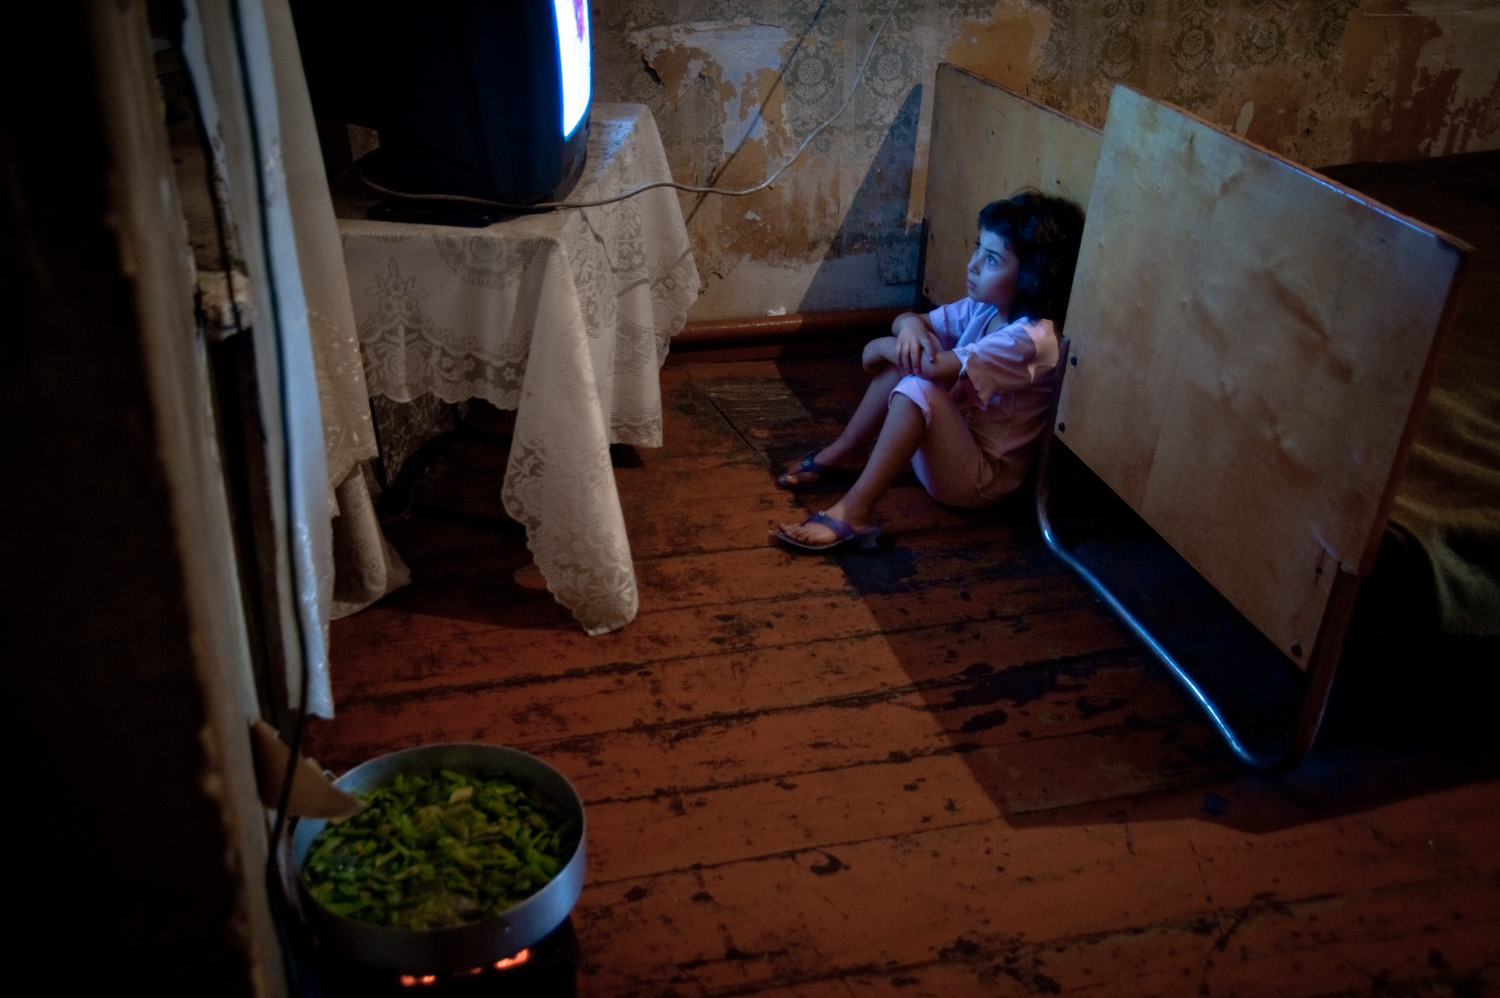 Christina lives with her single mom (who escaped an abusive husband) and 5 siblings in a dilapidated house in Yerevan. 6 months earlier before the family was rescued, they were living in a barn and were extremely malnurished.